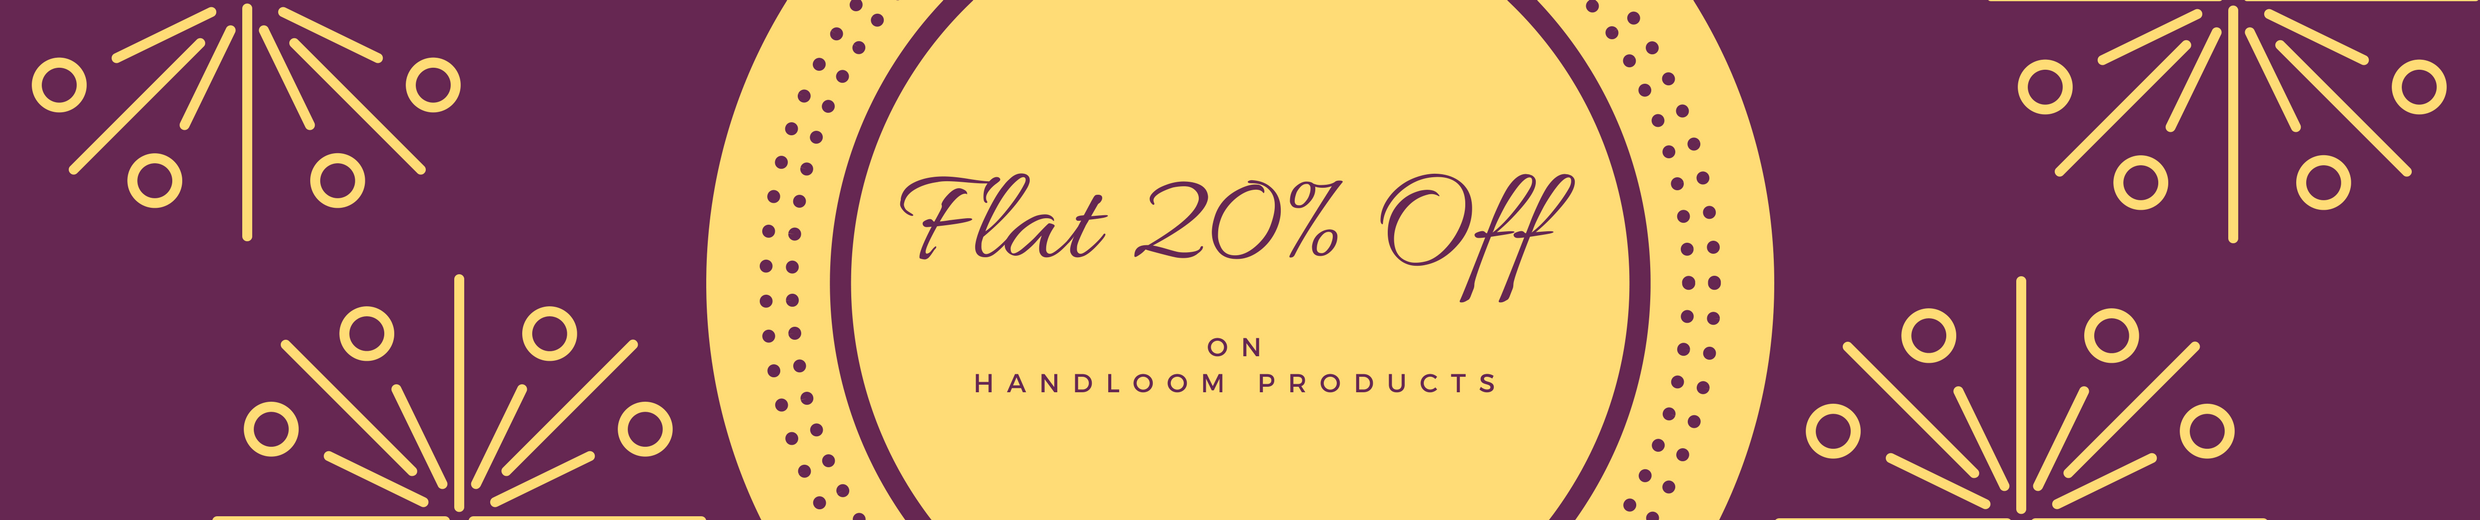 20% off on handloom products